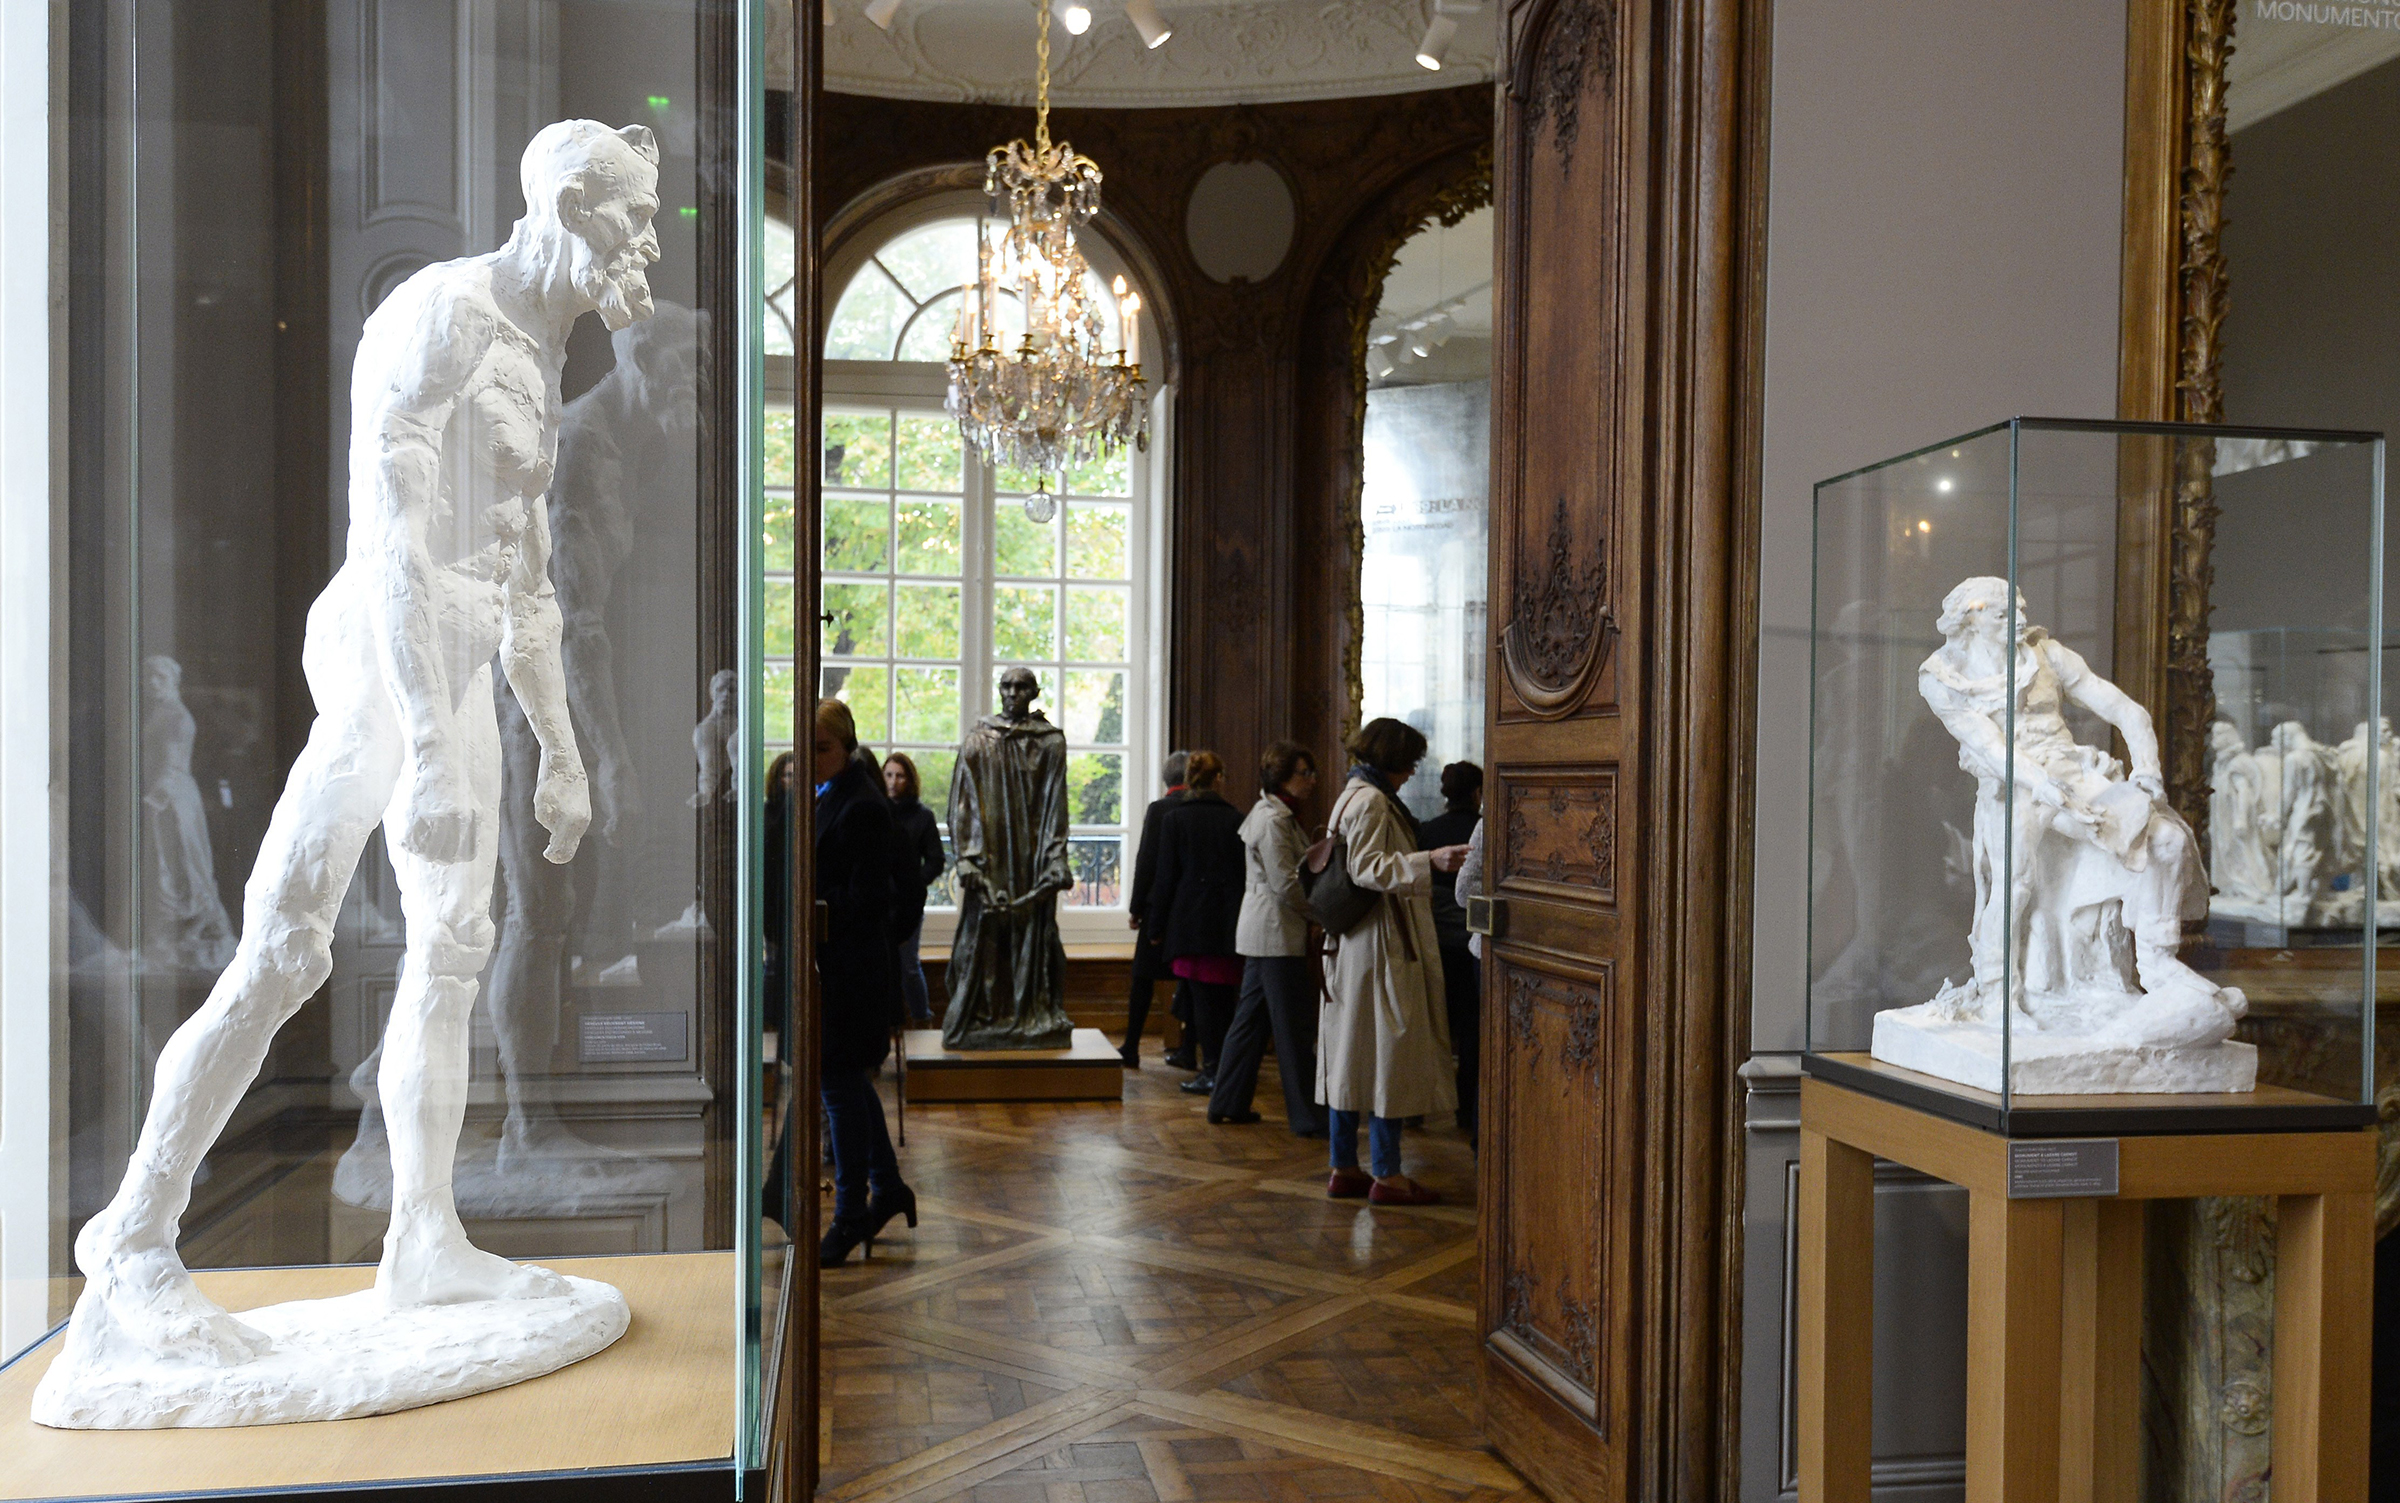 Musee Rodin Paris France 48 hours in Paris